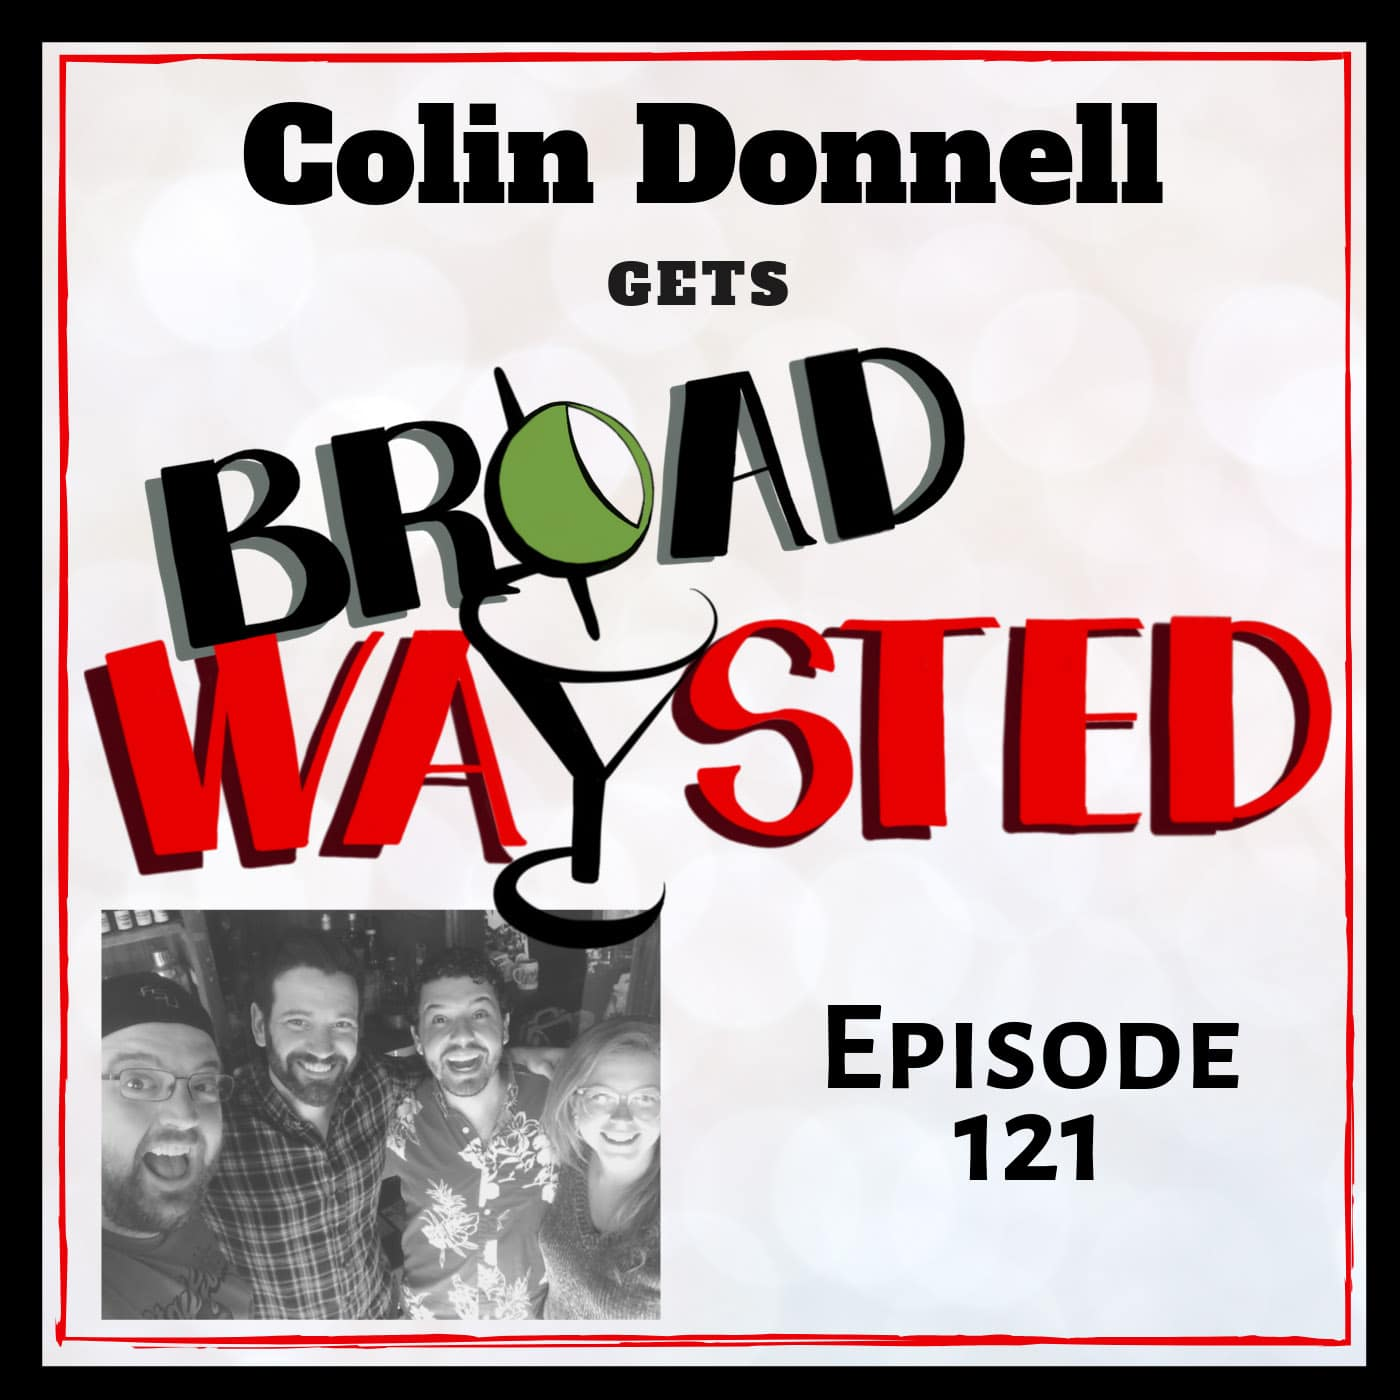 Broadwaysted Ep 121 Colin Donnell